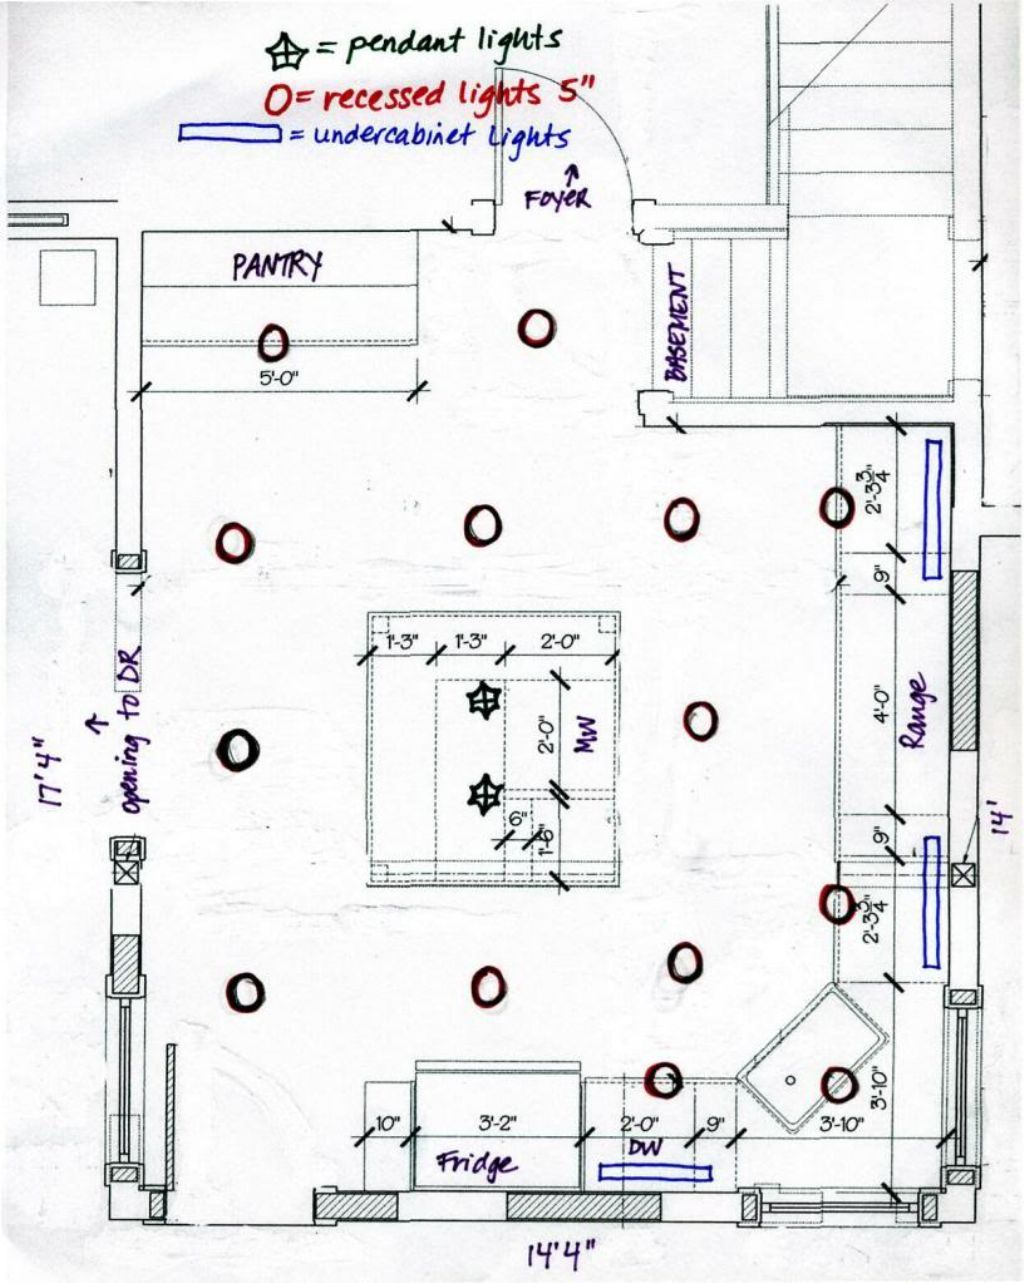 Recessed lighting layout diagram lighting info for Kitchen arrangement layout